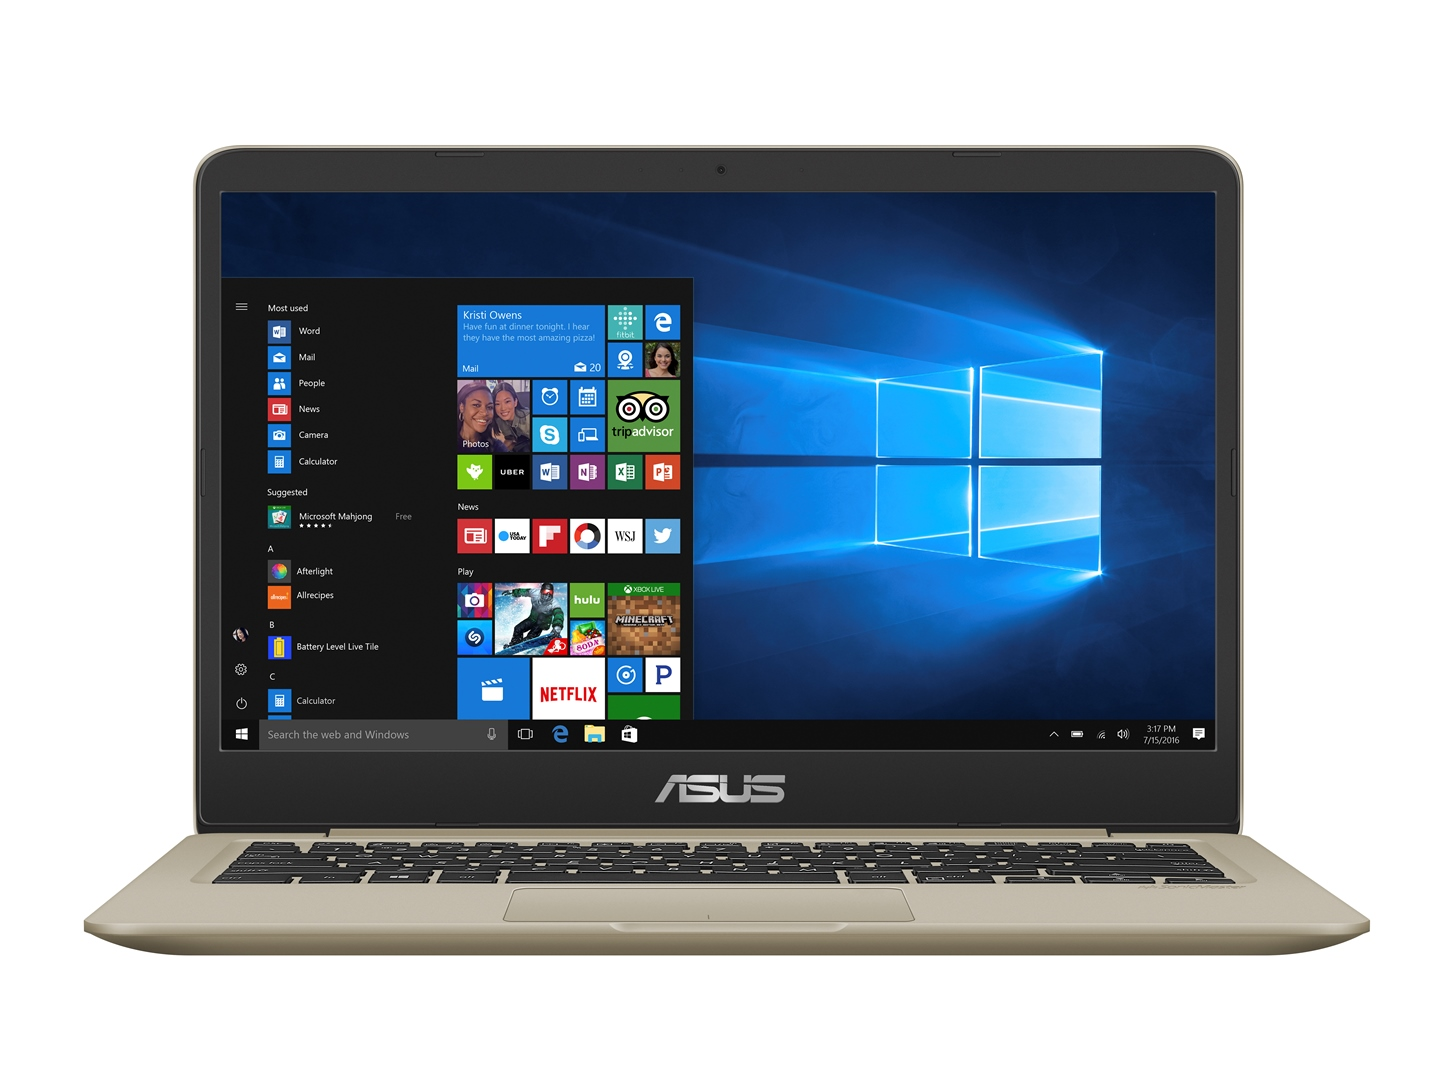 "ASUS S410UQ-EB047T i5-8250U/4G/256G SSD SATA3/GT940MX 2G/14"" TN/FHD/W10/Gold"